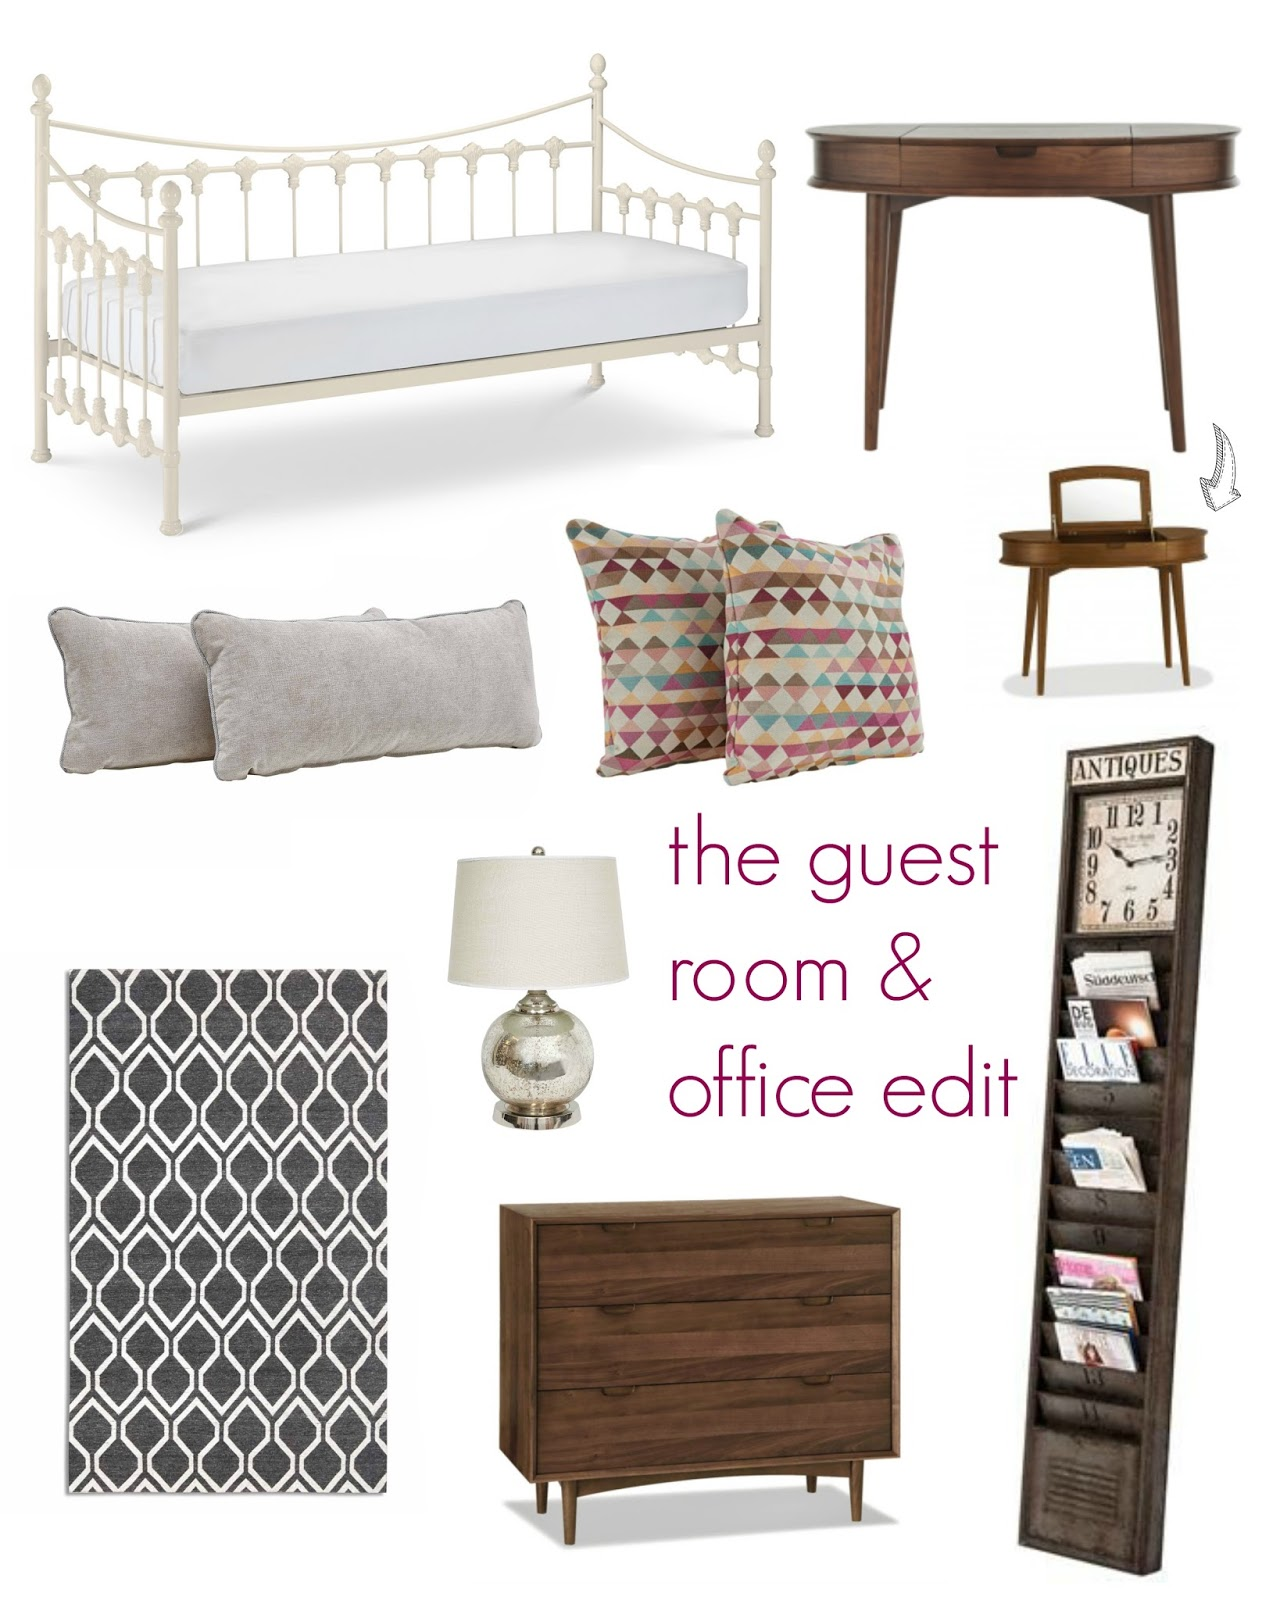 V I Buys How To Create The Perfect Guest Room And Office Space Mamas V I B